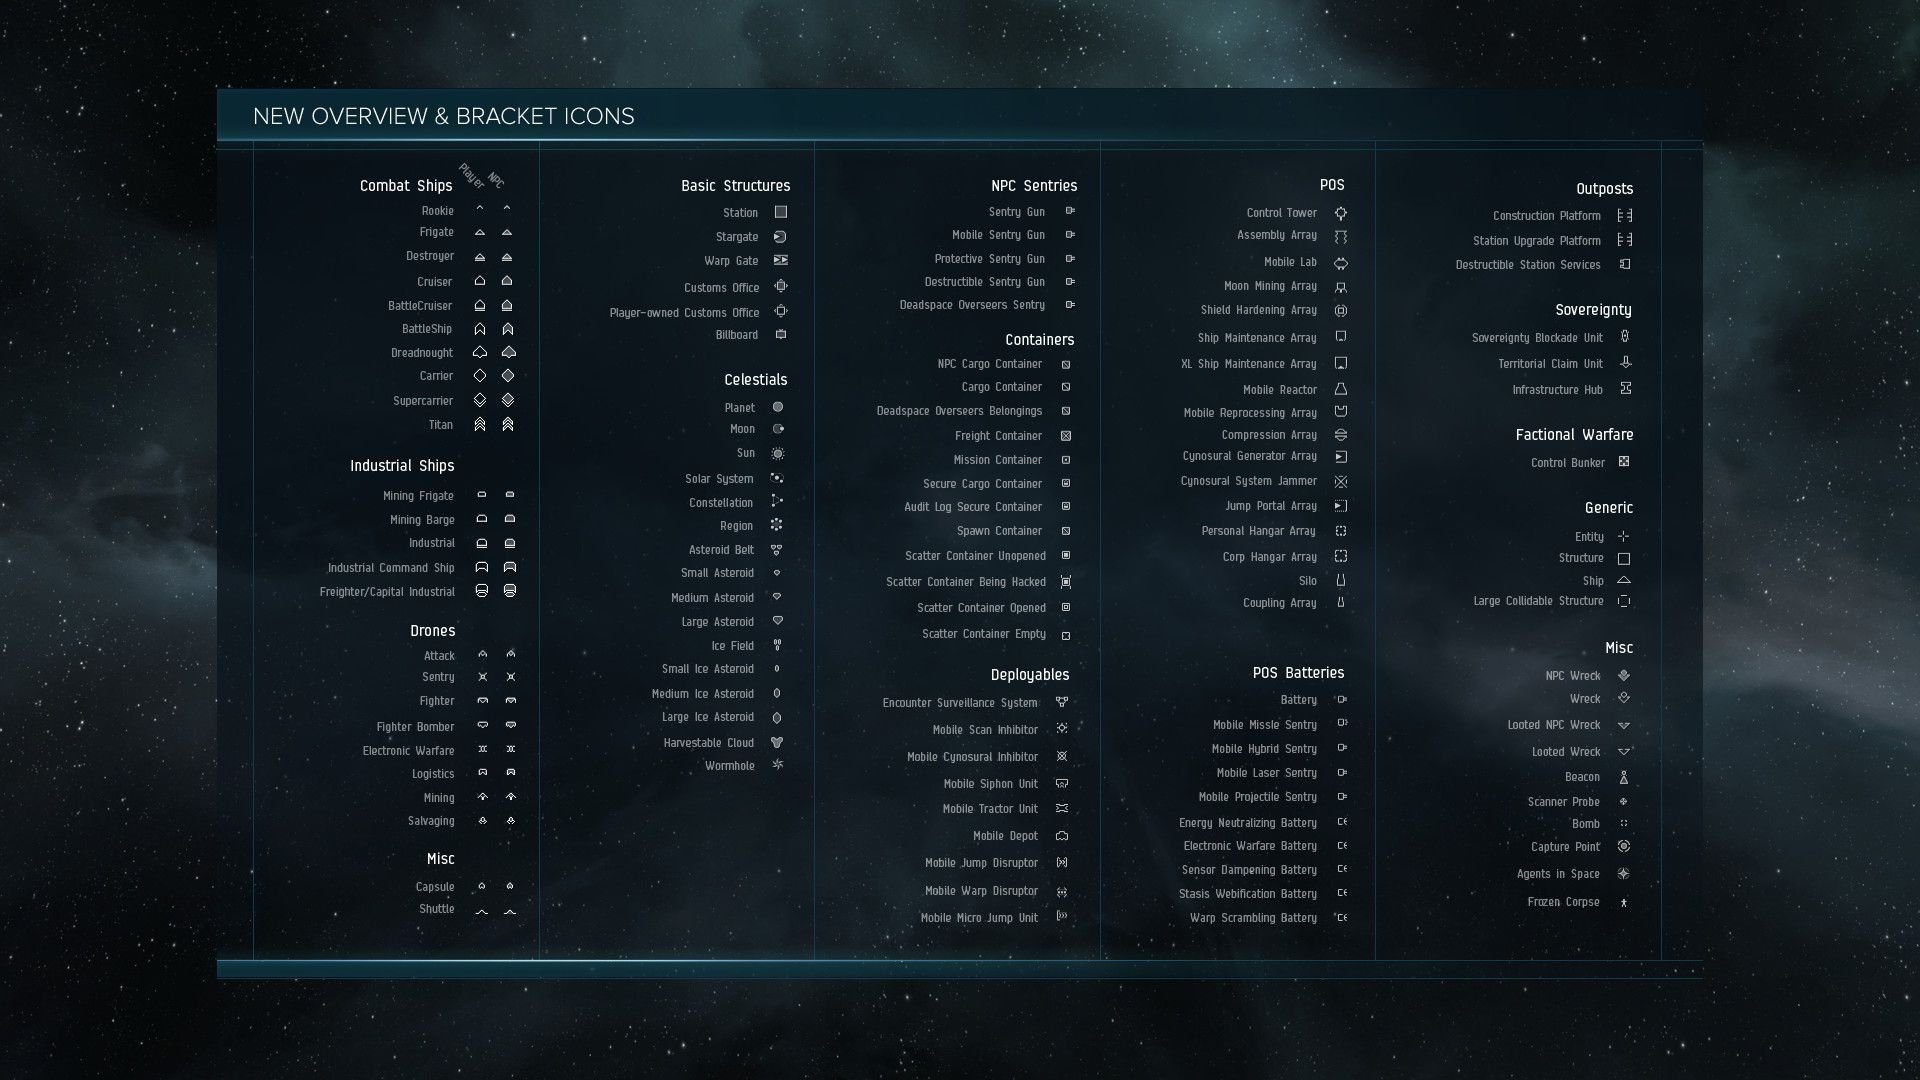 eve online overview icons [ 1920 x 1080 Pixel ]